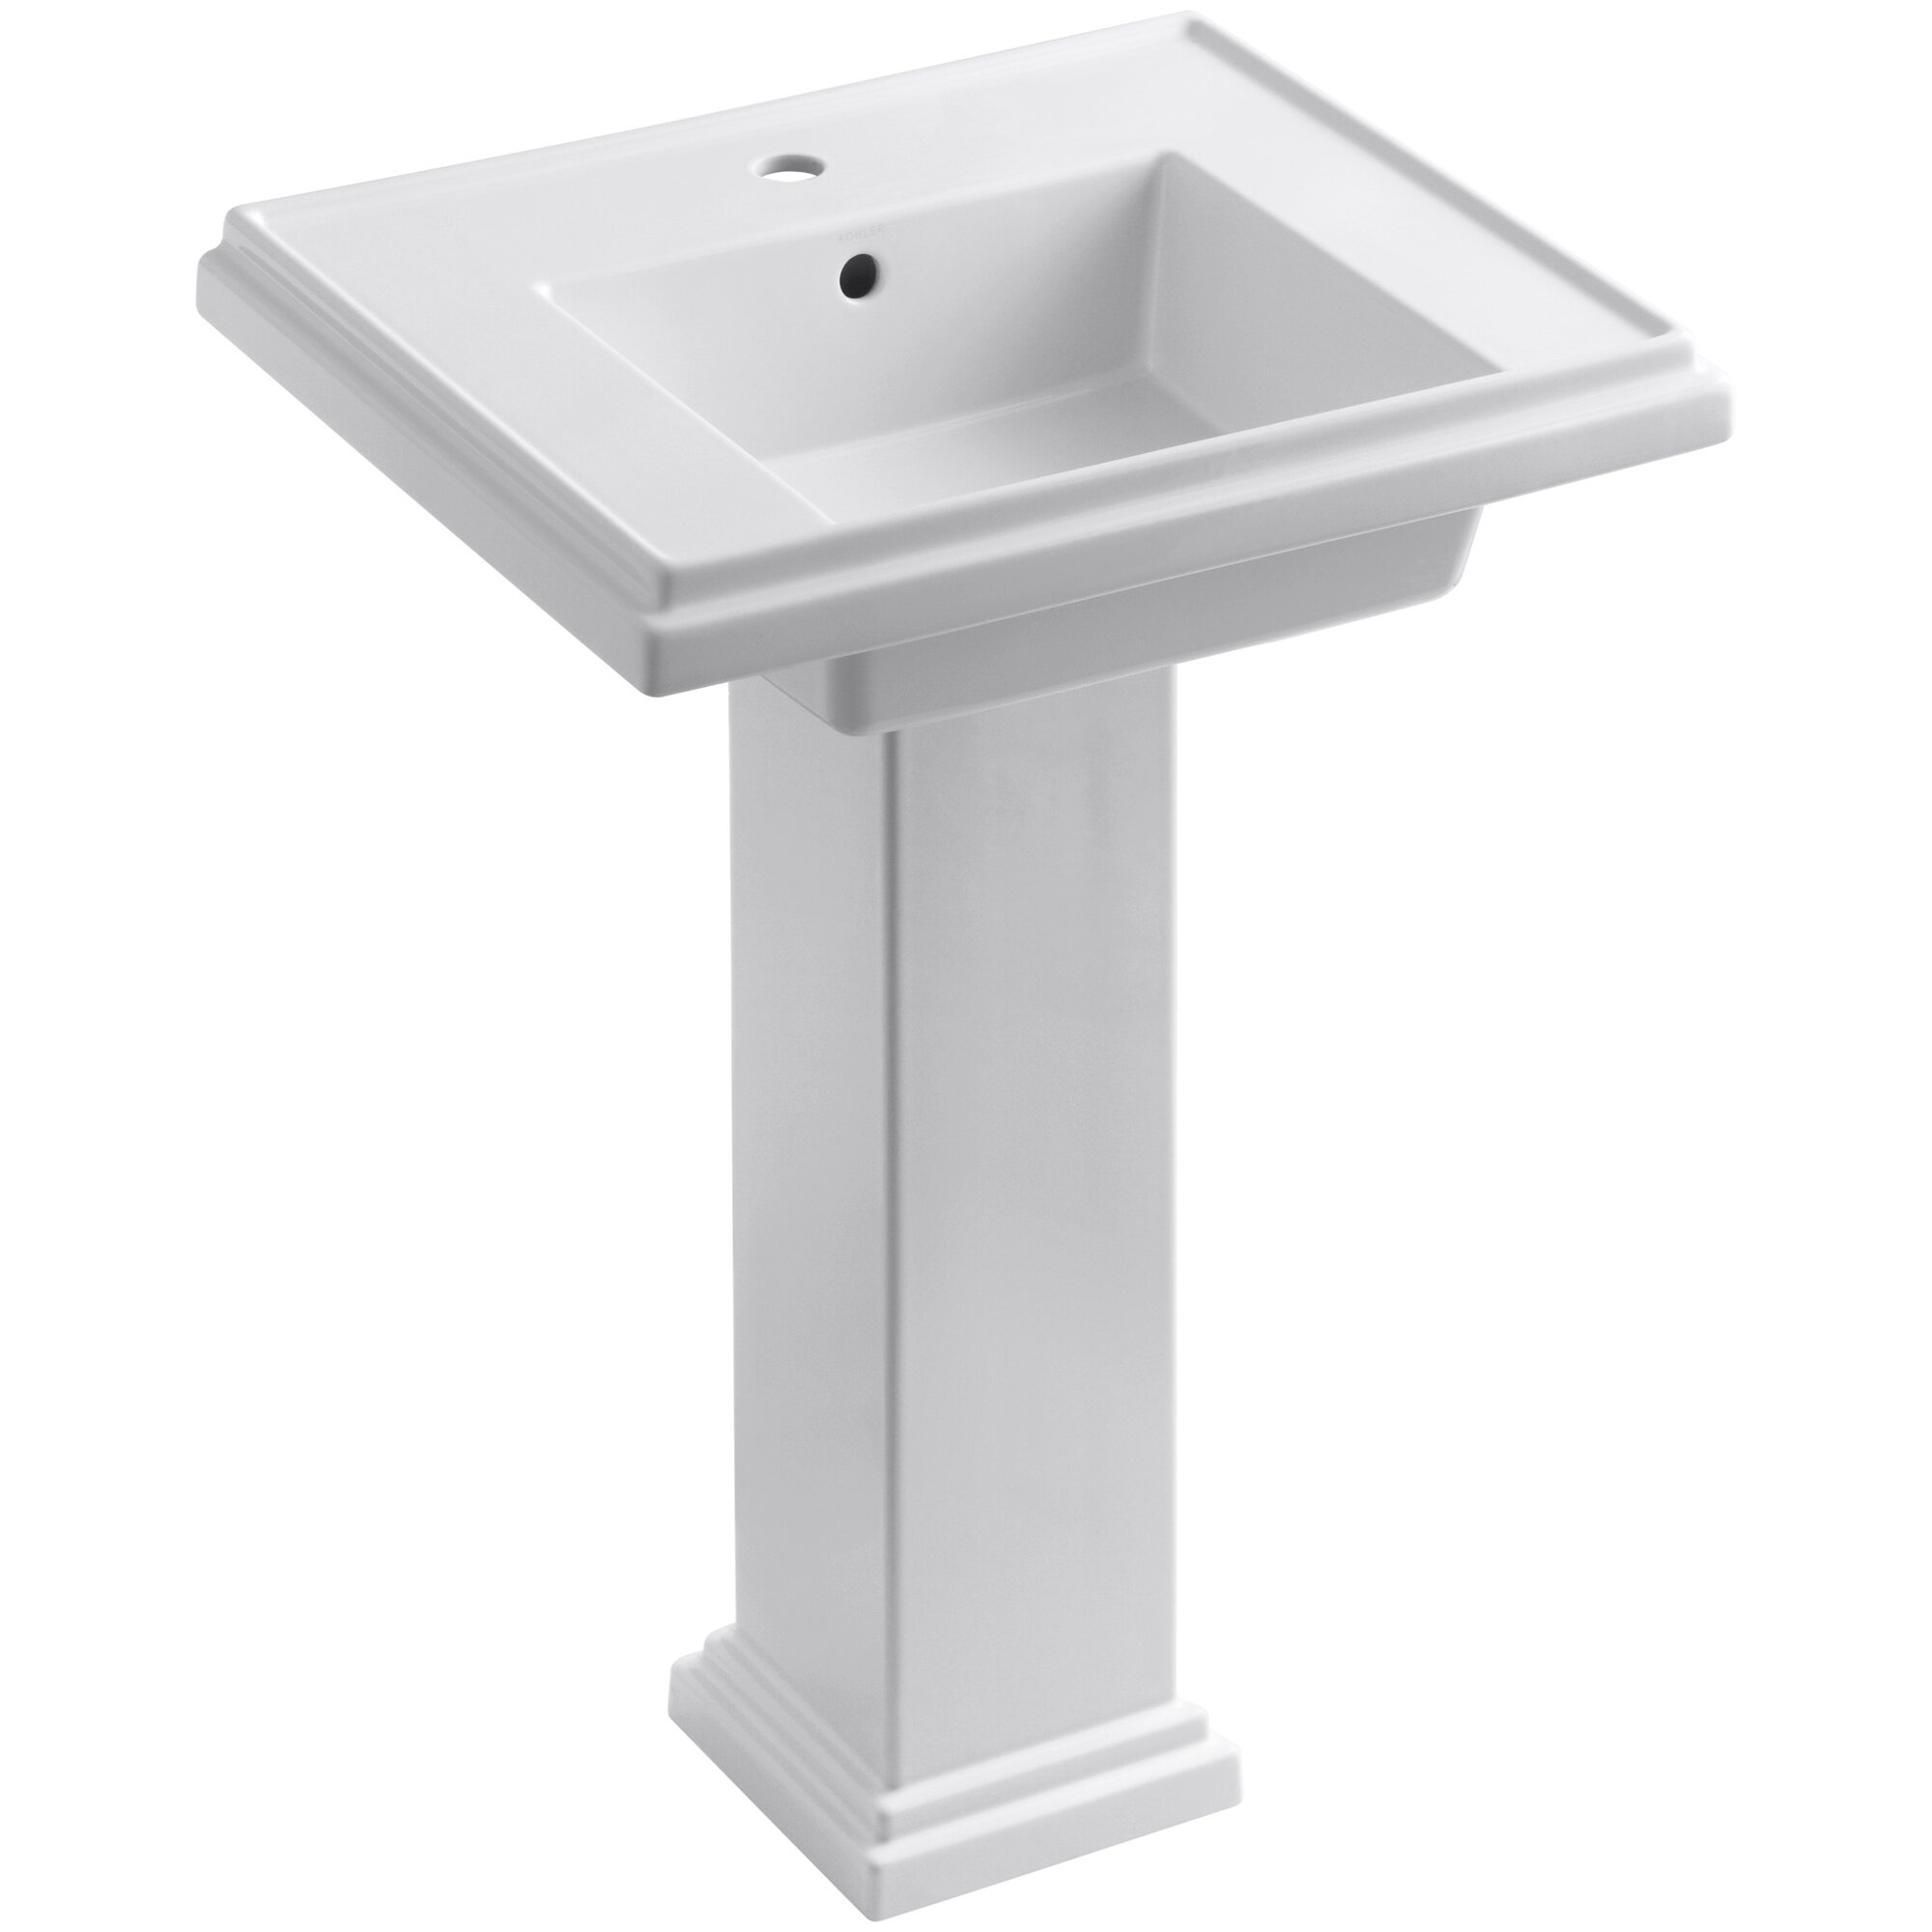 Kohler TreshamR 24 Pedestal Bathroom Sink With Overflow